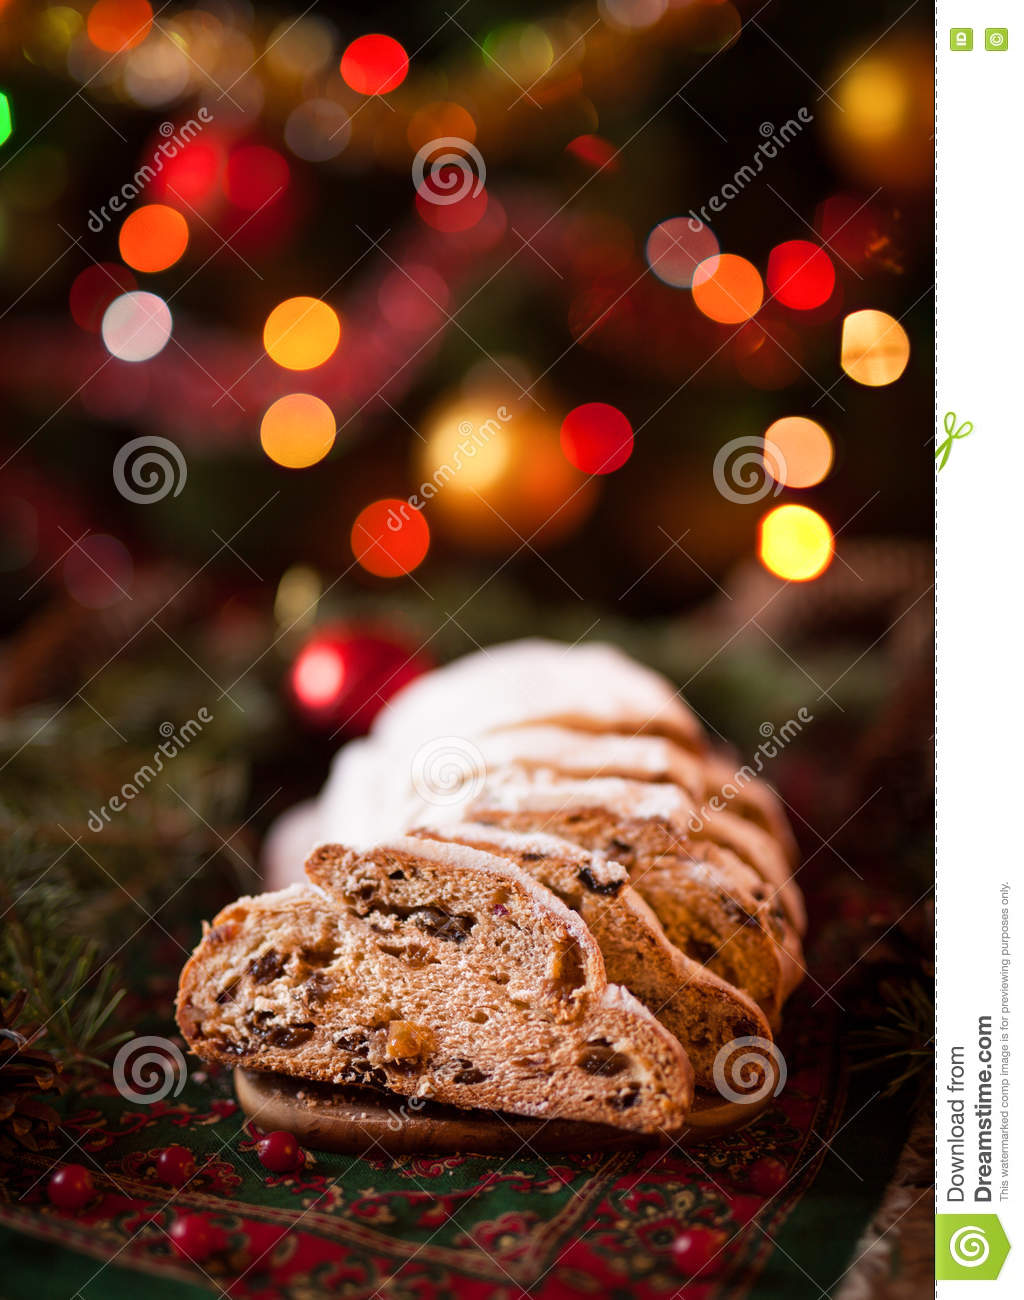 Traditional german christmas decorations - Traditional German Christmas Cake Cranberry Stollen Holiday Xmas Celebration Decorations Ornaments And Candles